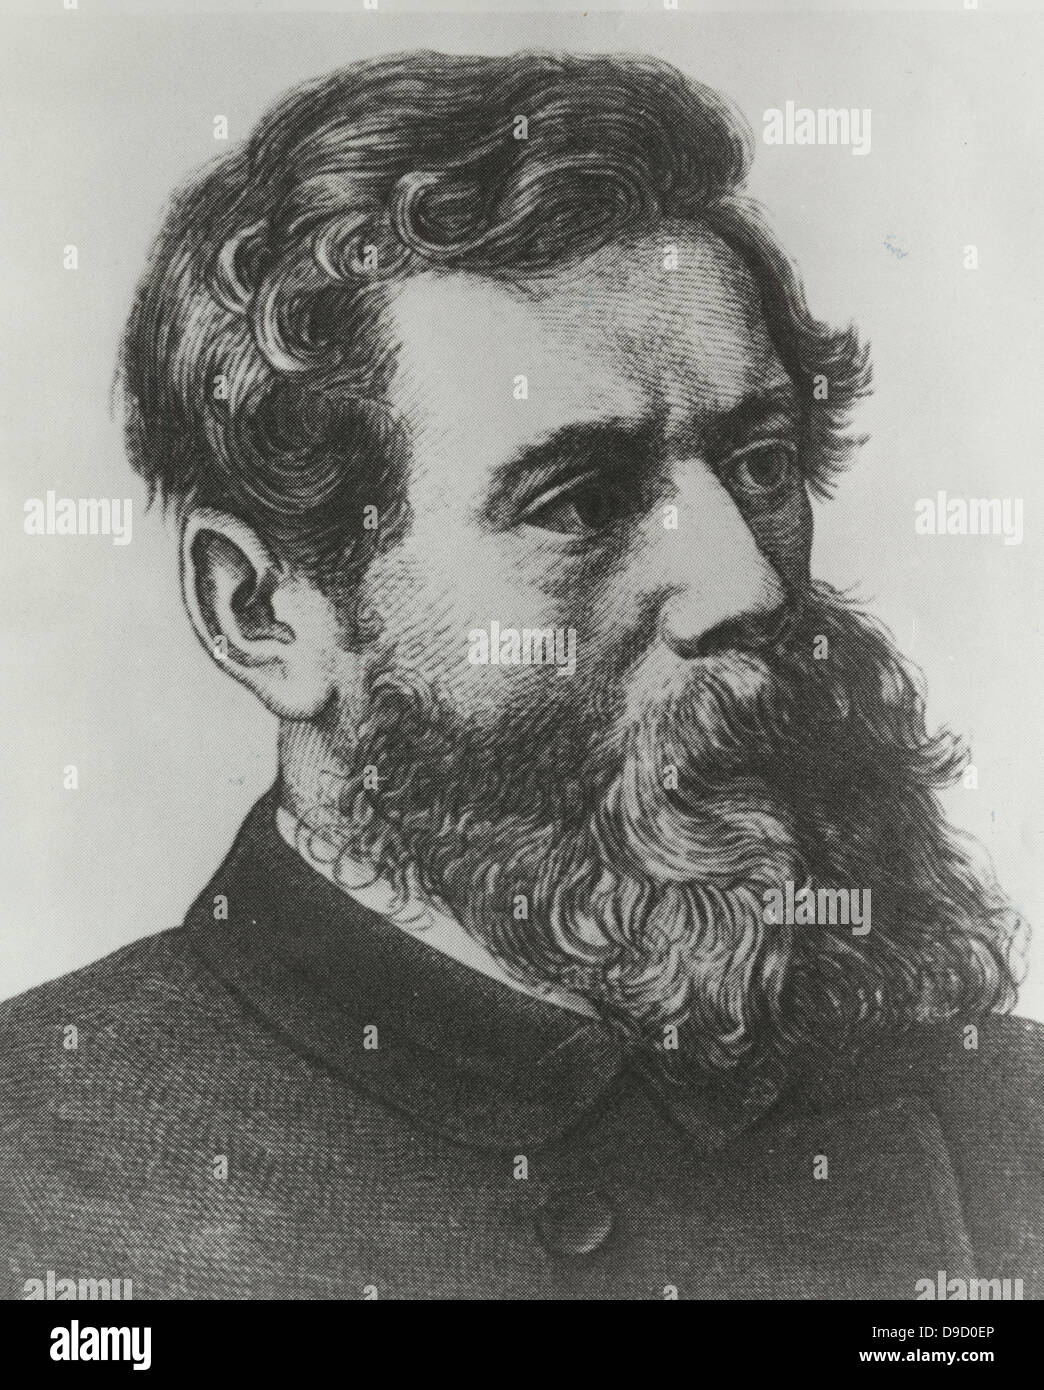 Ludwig Andreas von Feuerbach (1804-1872) German philosopher and anthropologist. - Stock Image